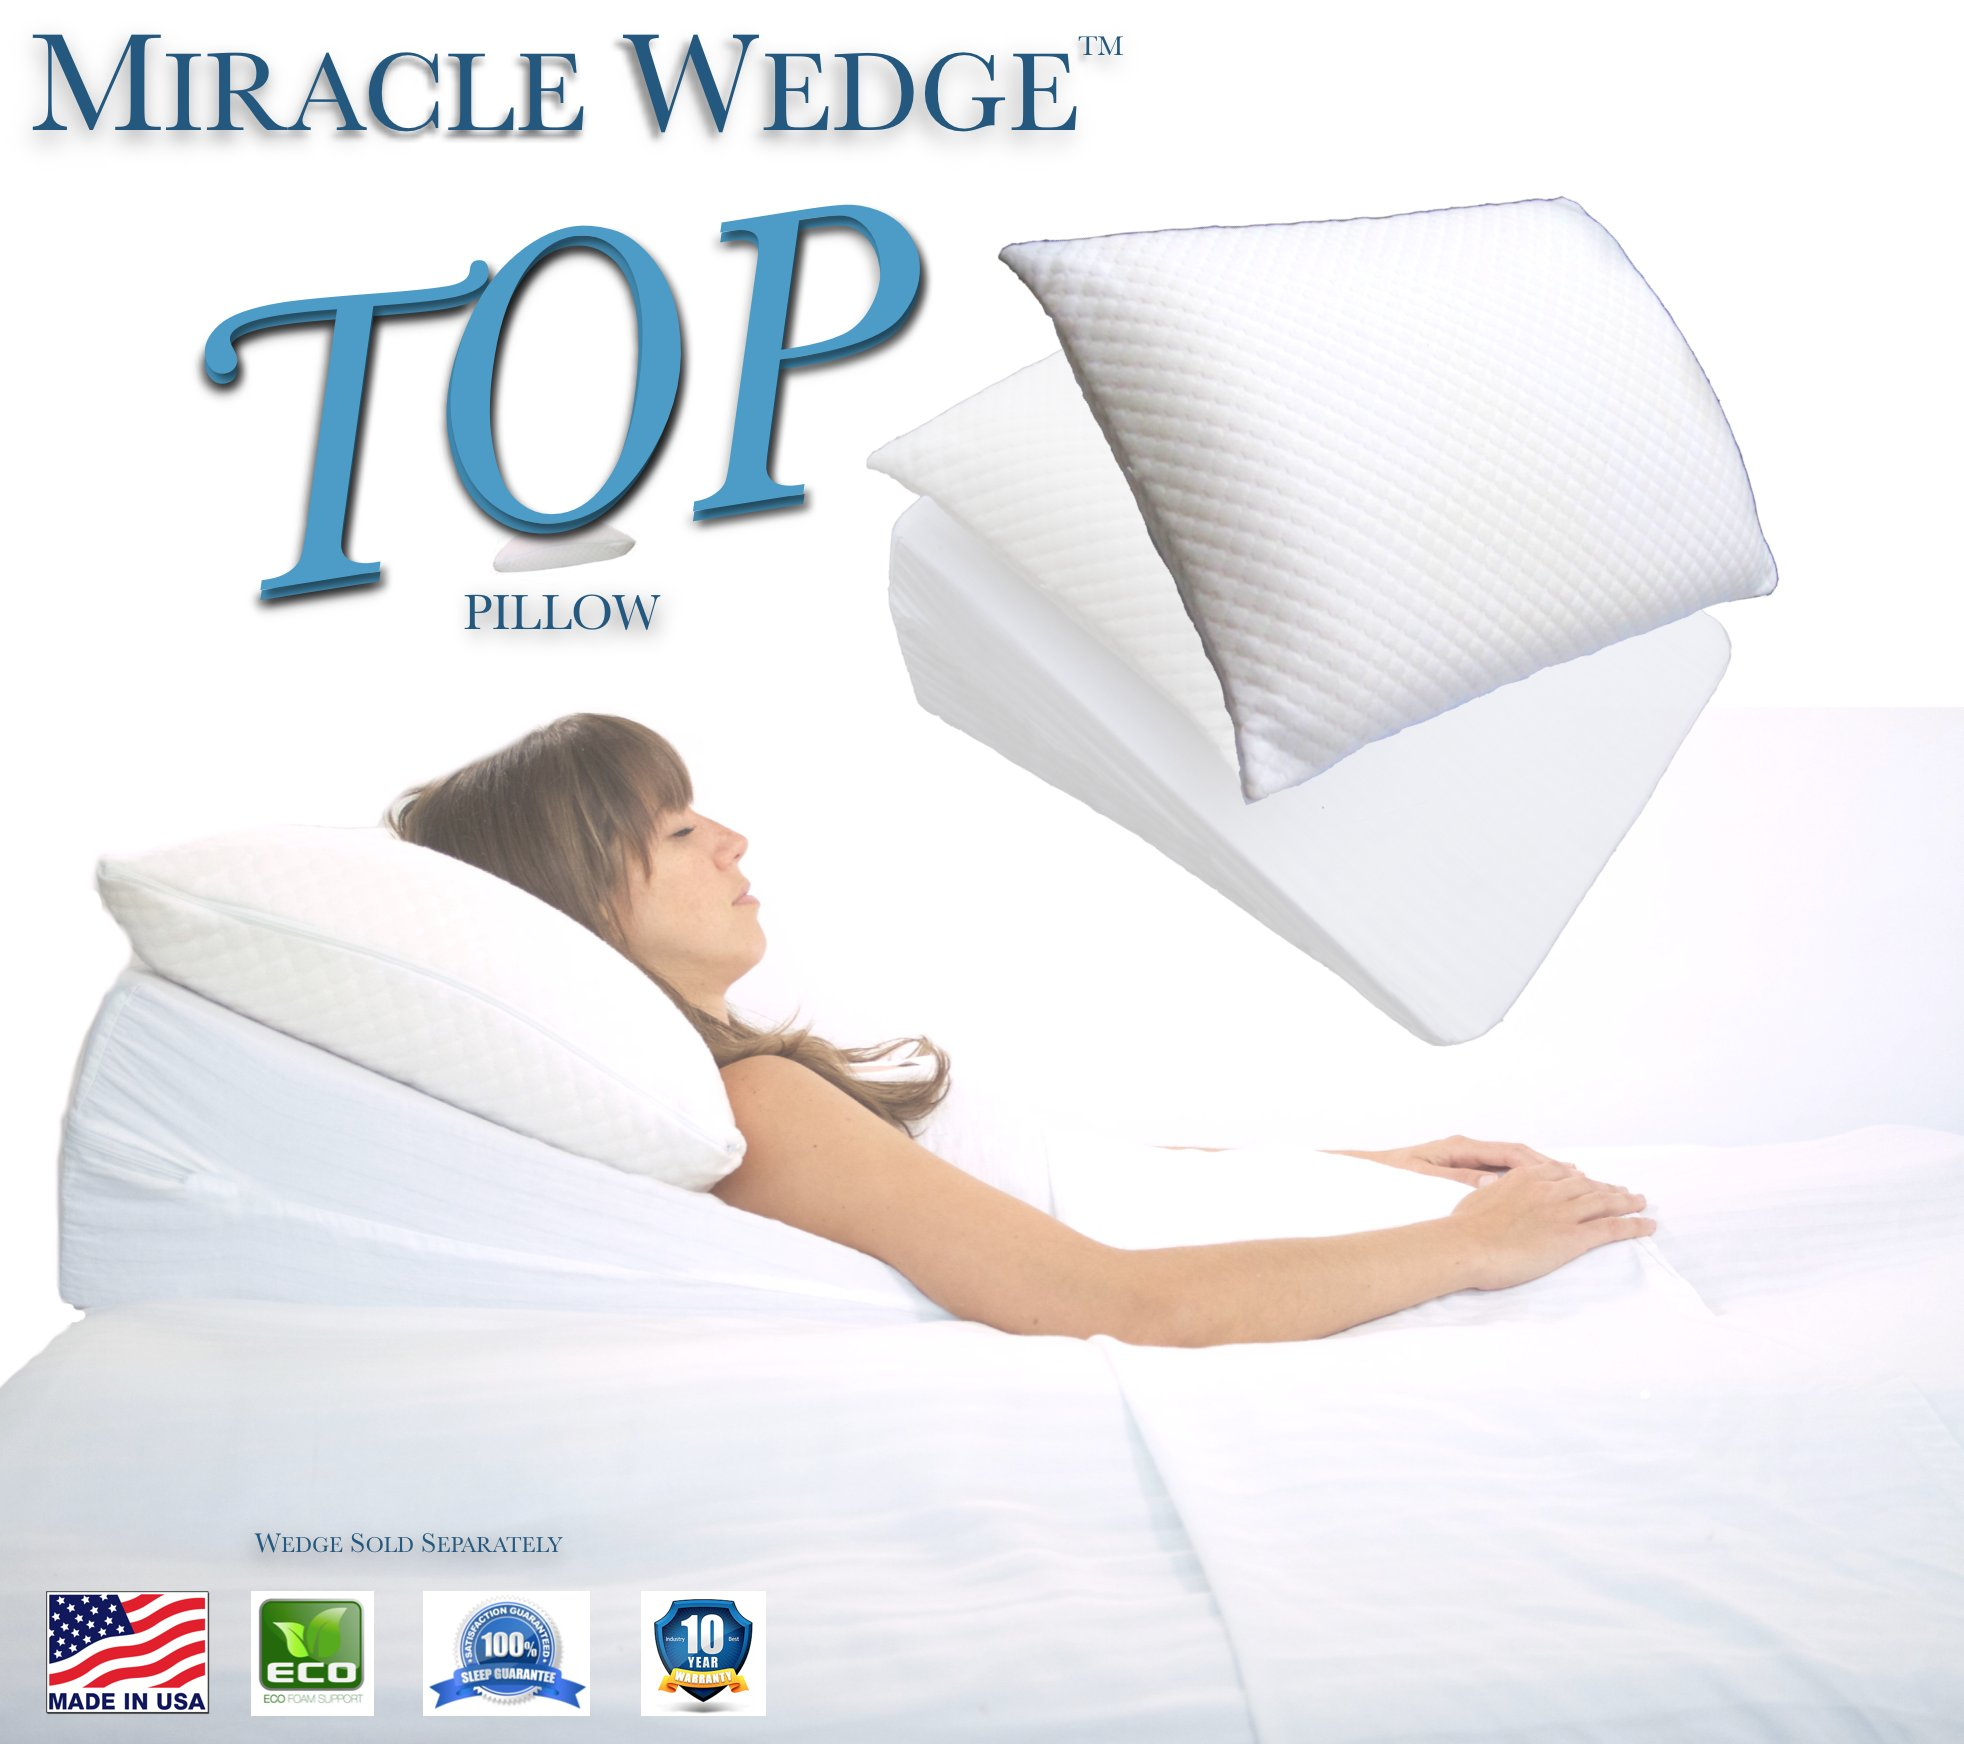 Angled Pillow For Acid Reflux Cheap 30 Degree Wedge Pillow Find 30 Degree Wedge Pillow Deals On